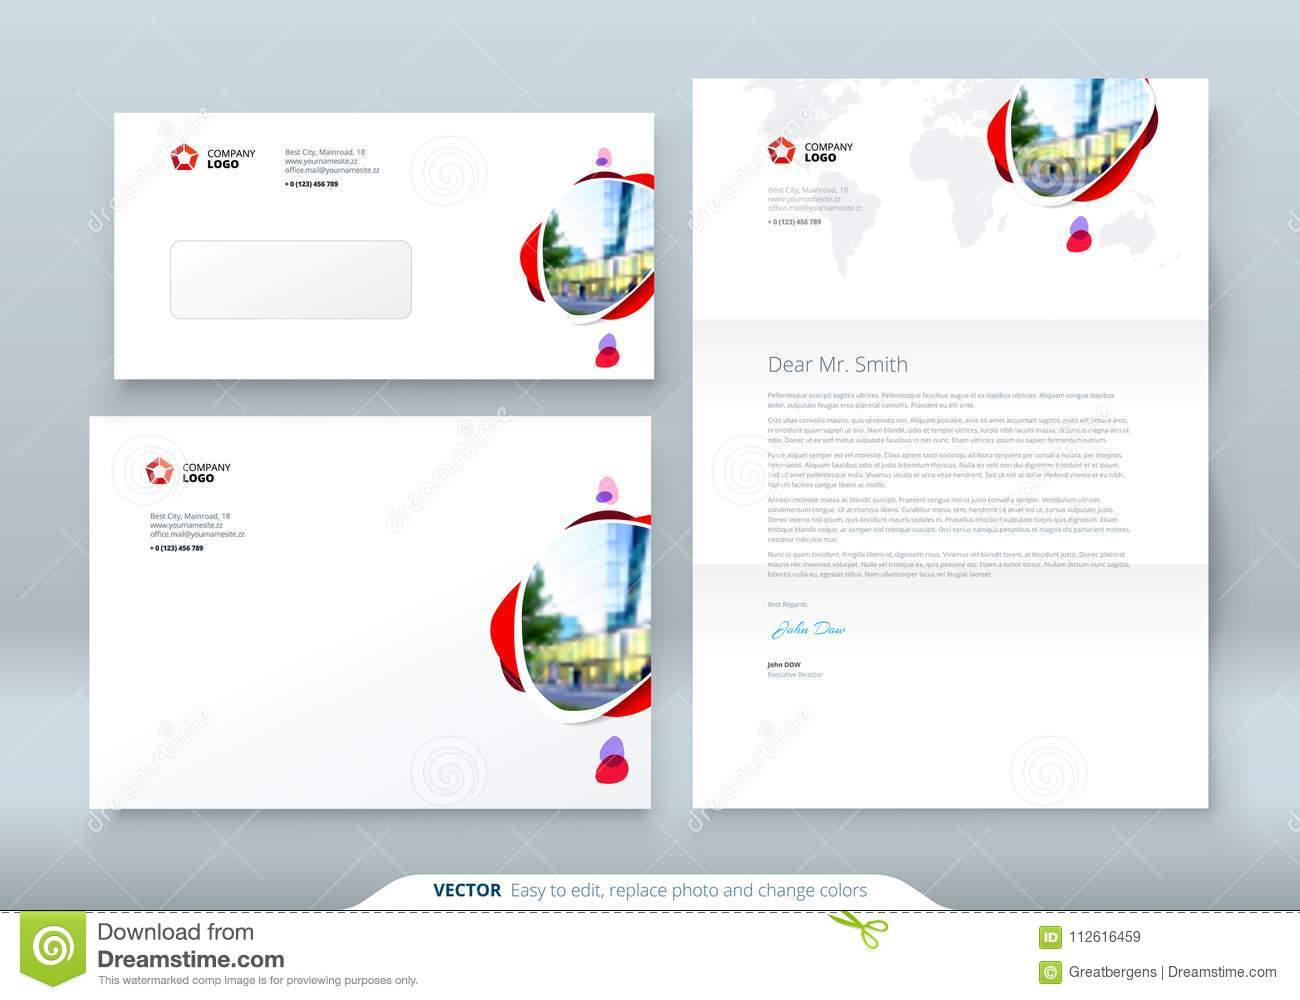 envelope dl c5 letterhead corporate business template for envelope and letter layout